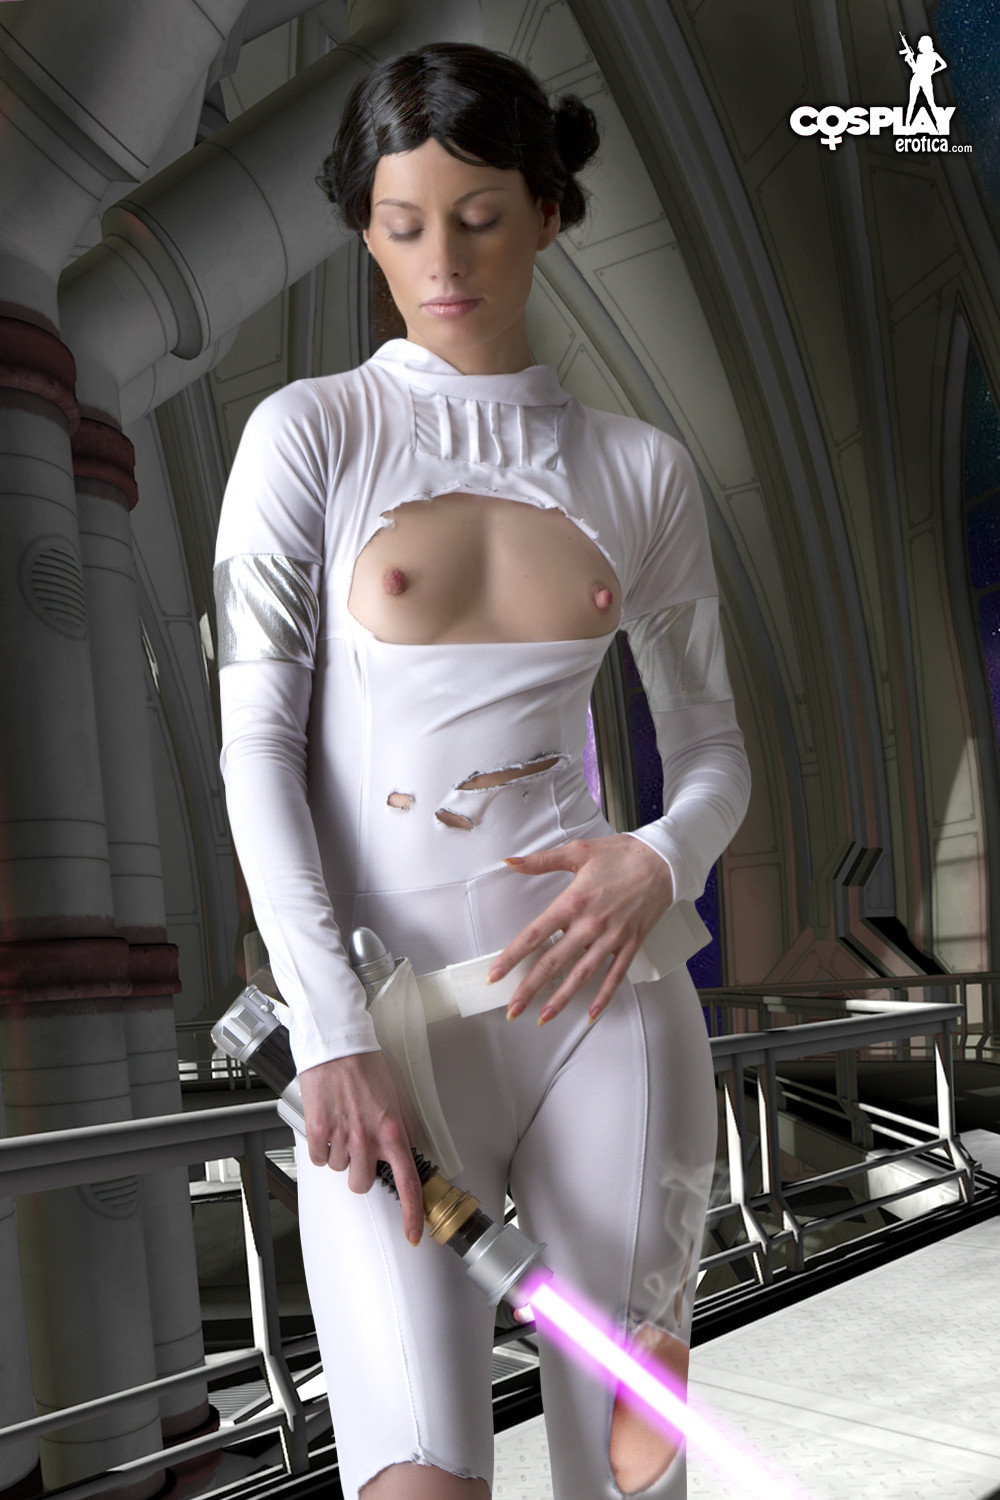 The excellent star wars cosplay porn consider